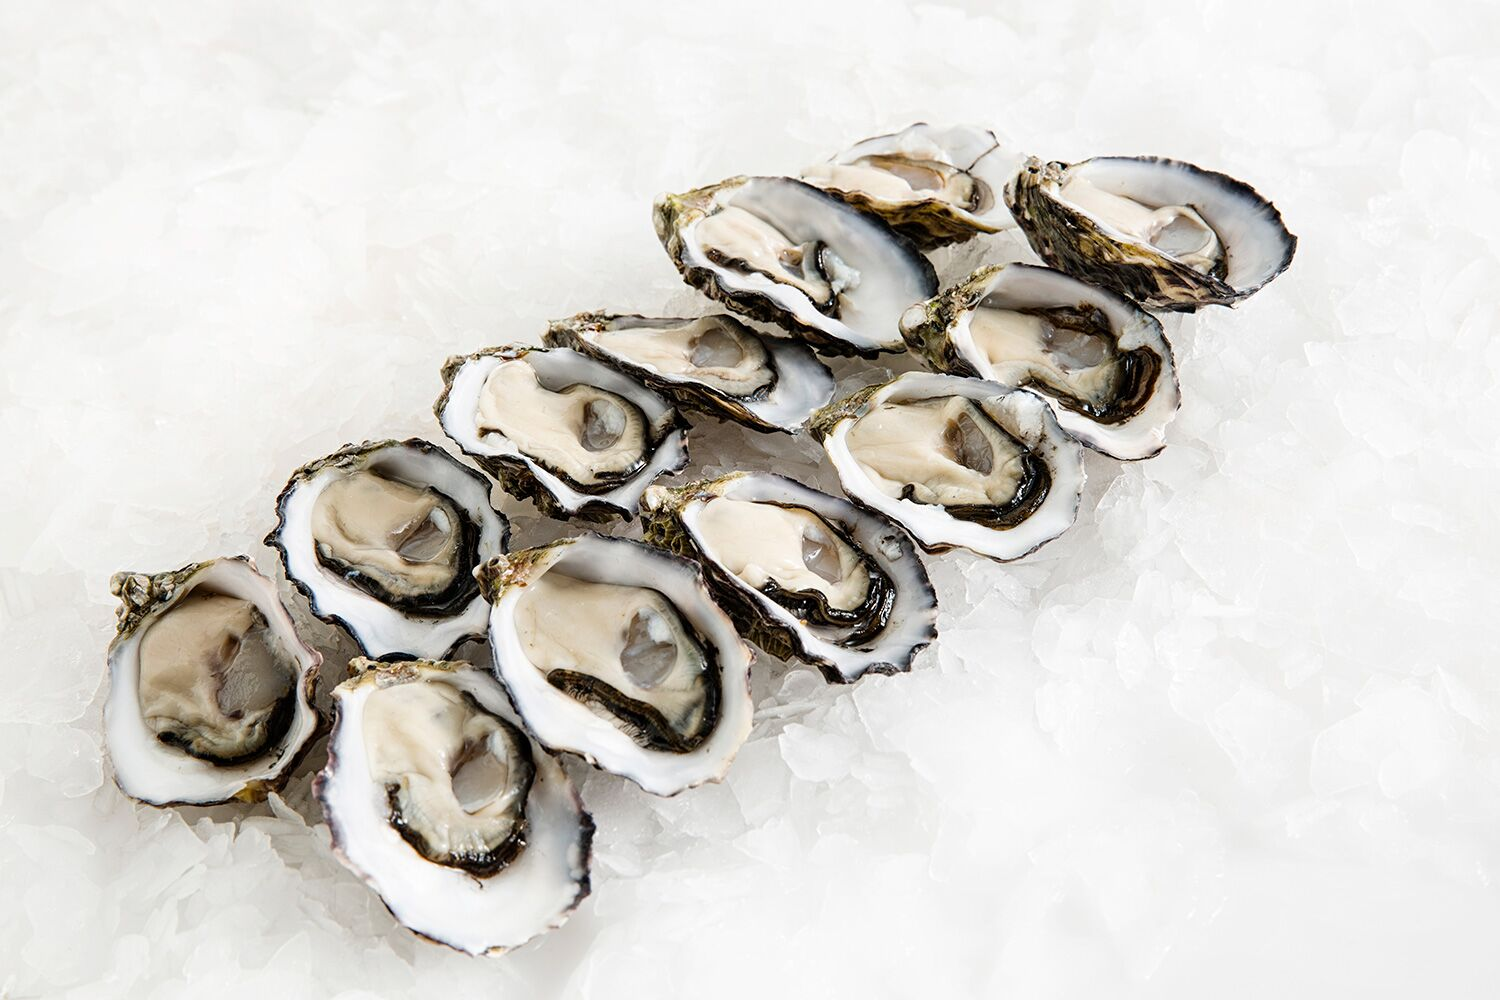 Pacific-Oyster-Large-Woy-Woy-Fishermens-Wharf-Manettas-Seafood-Market.jpg